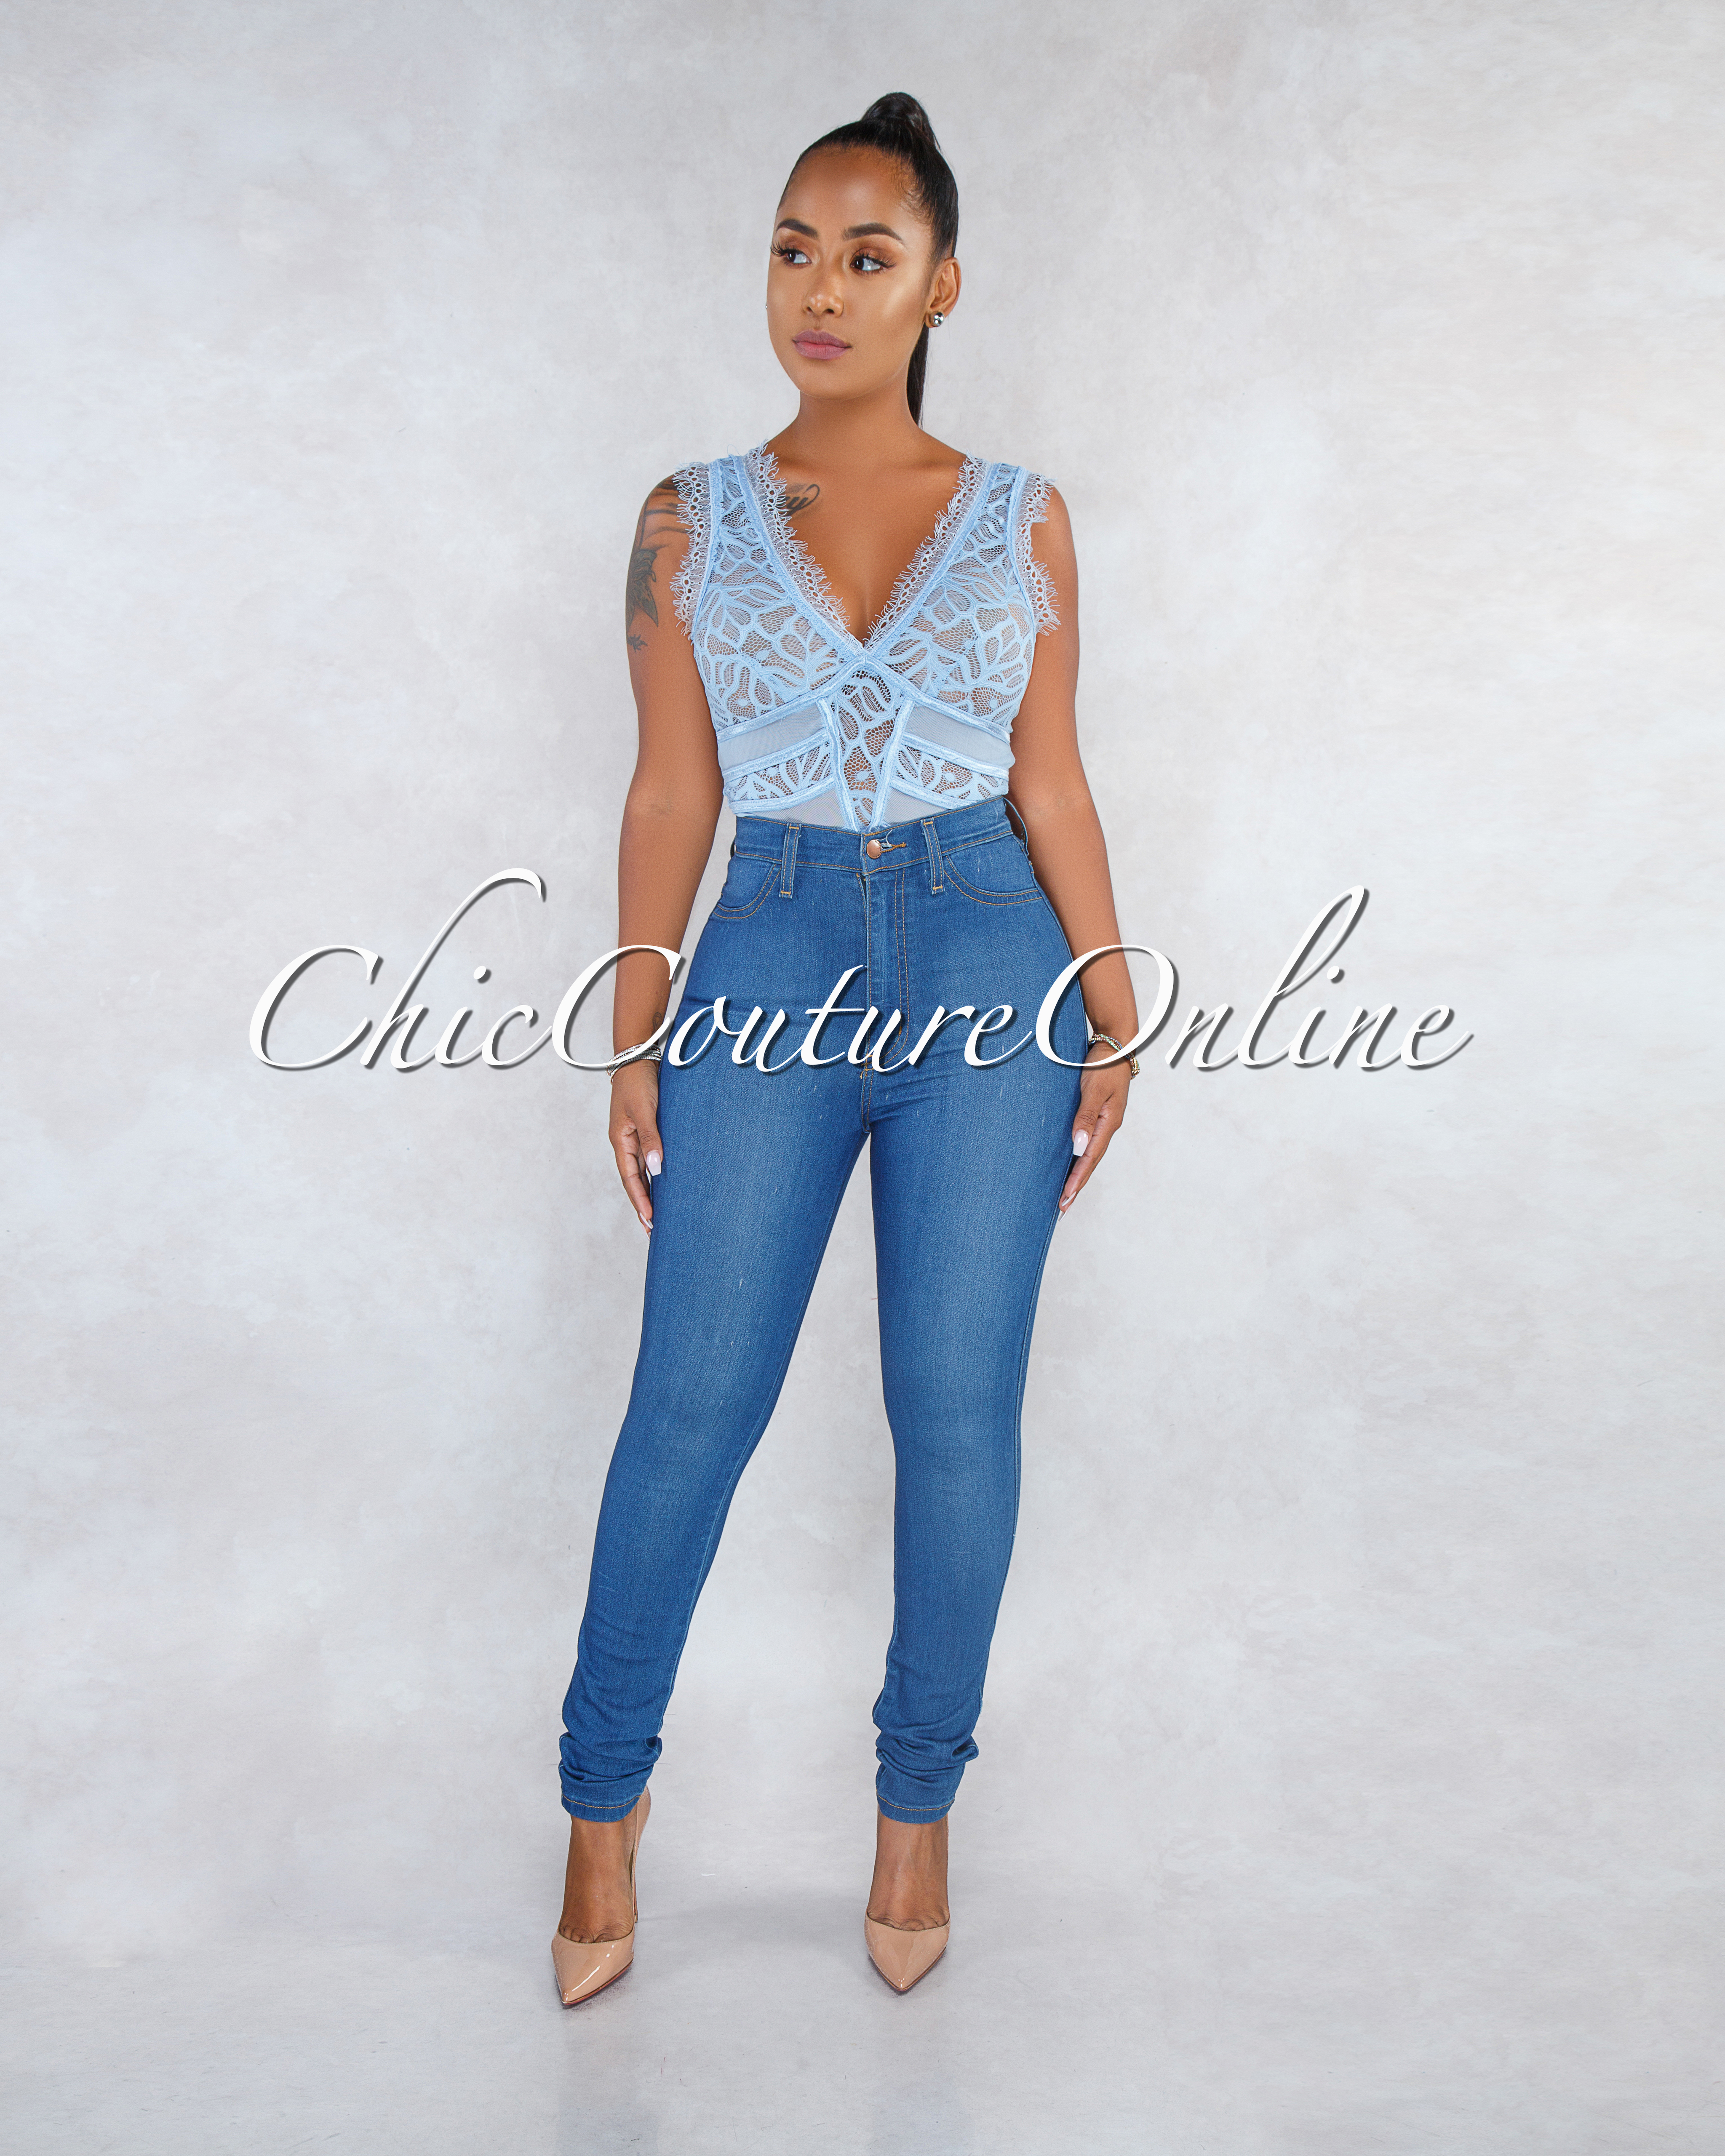 Zinnia Baby Blue Mesh Lace See-Through Bodysuit